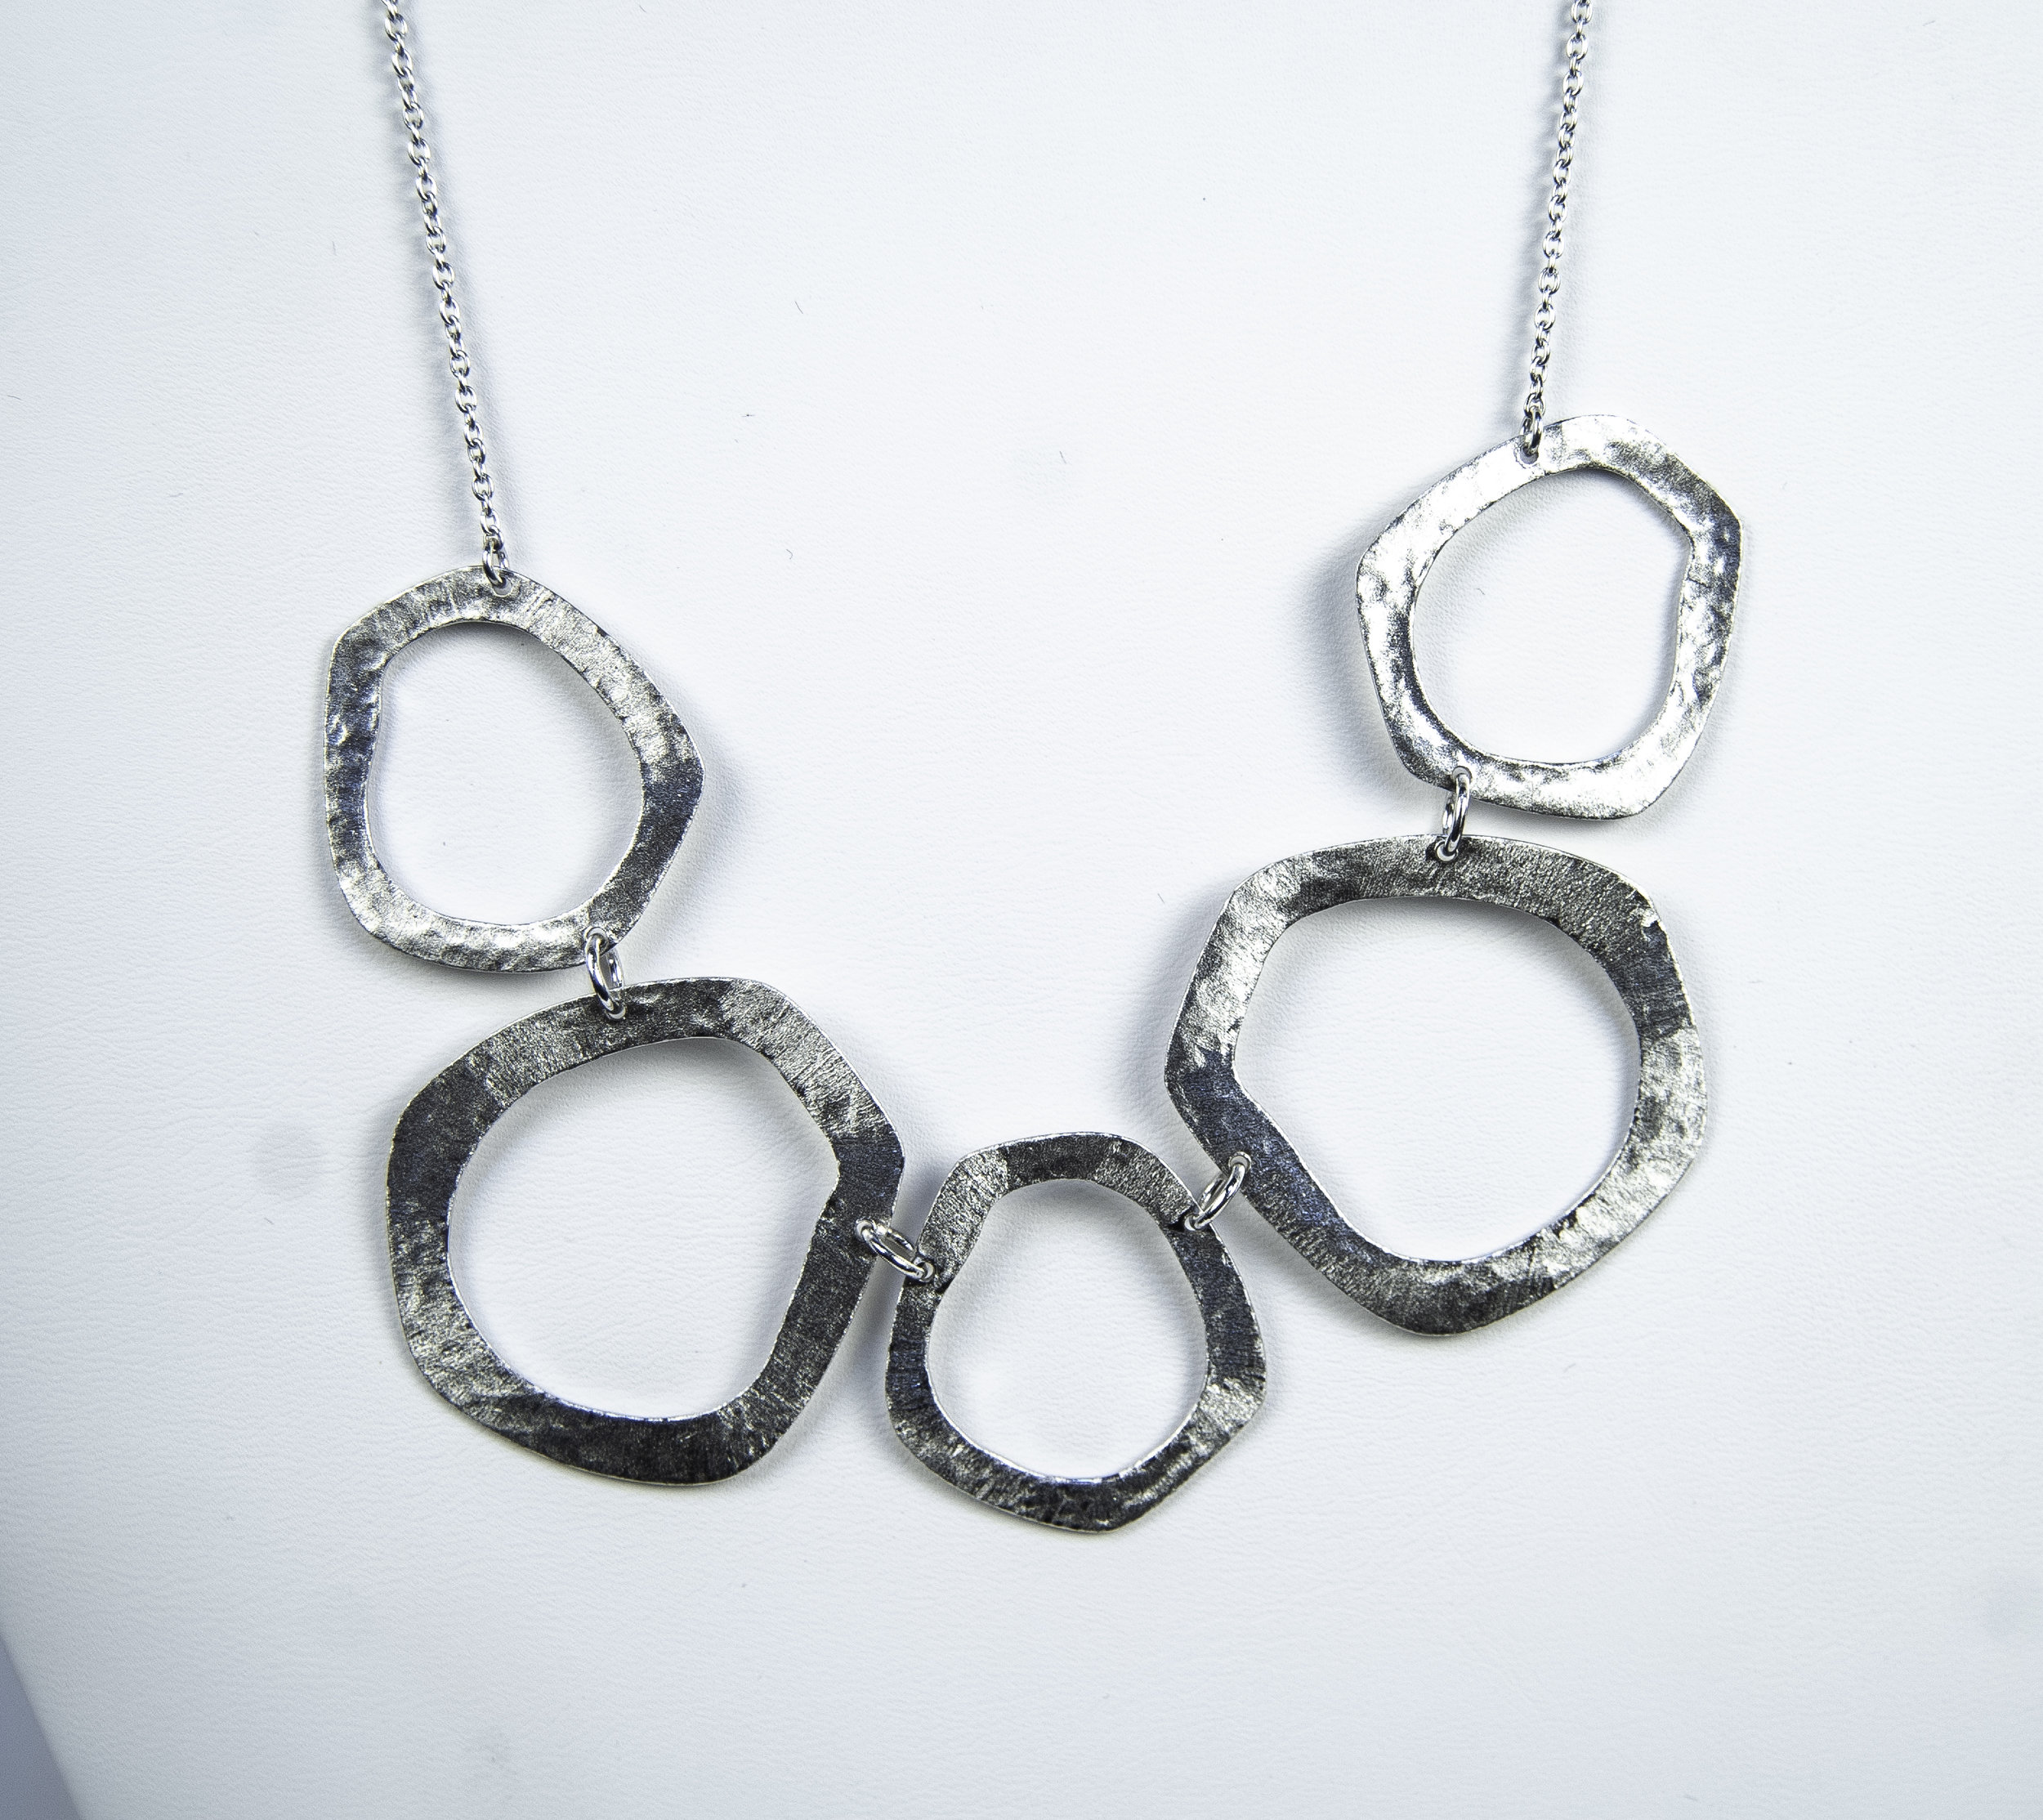 665-555   Pure Silver 95.8% Florentine 5 Ring Necklace Length 18 $363.00